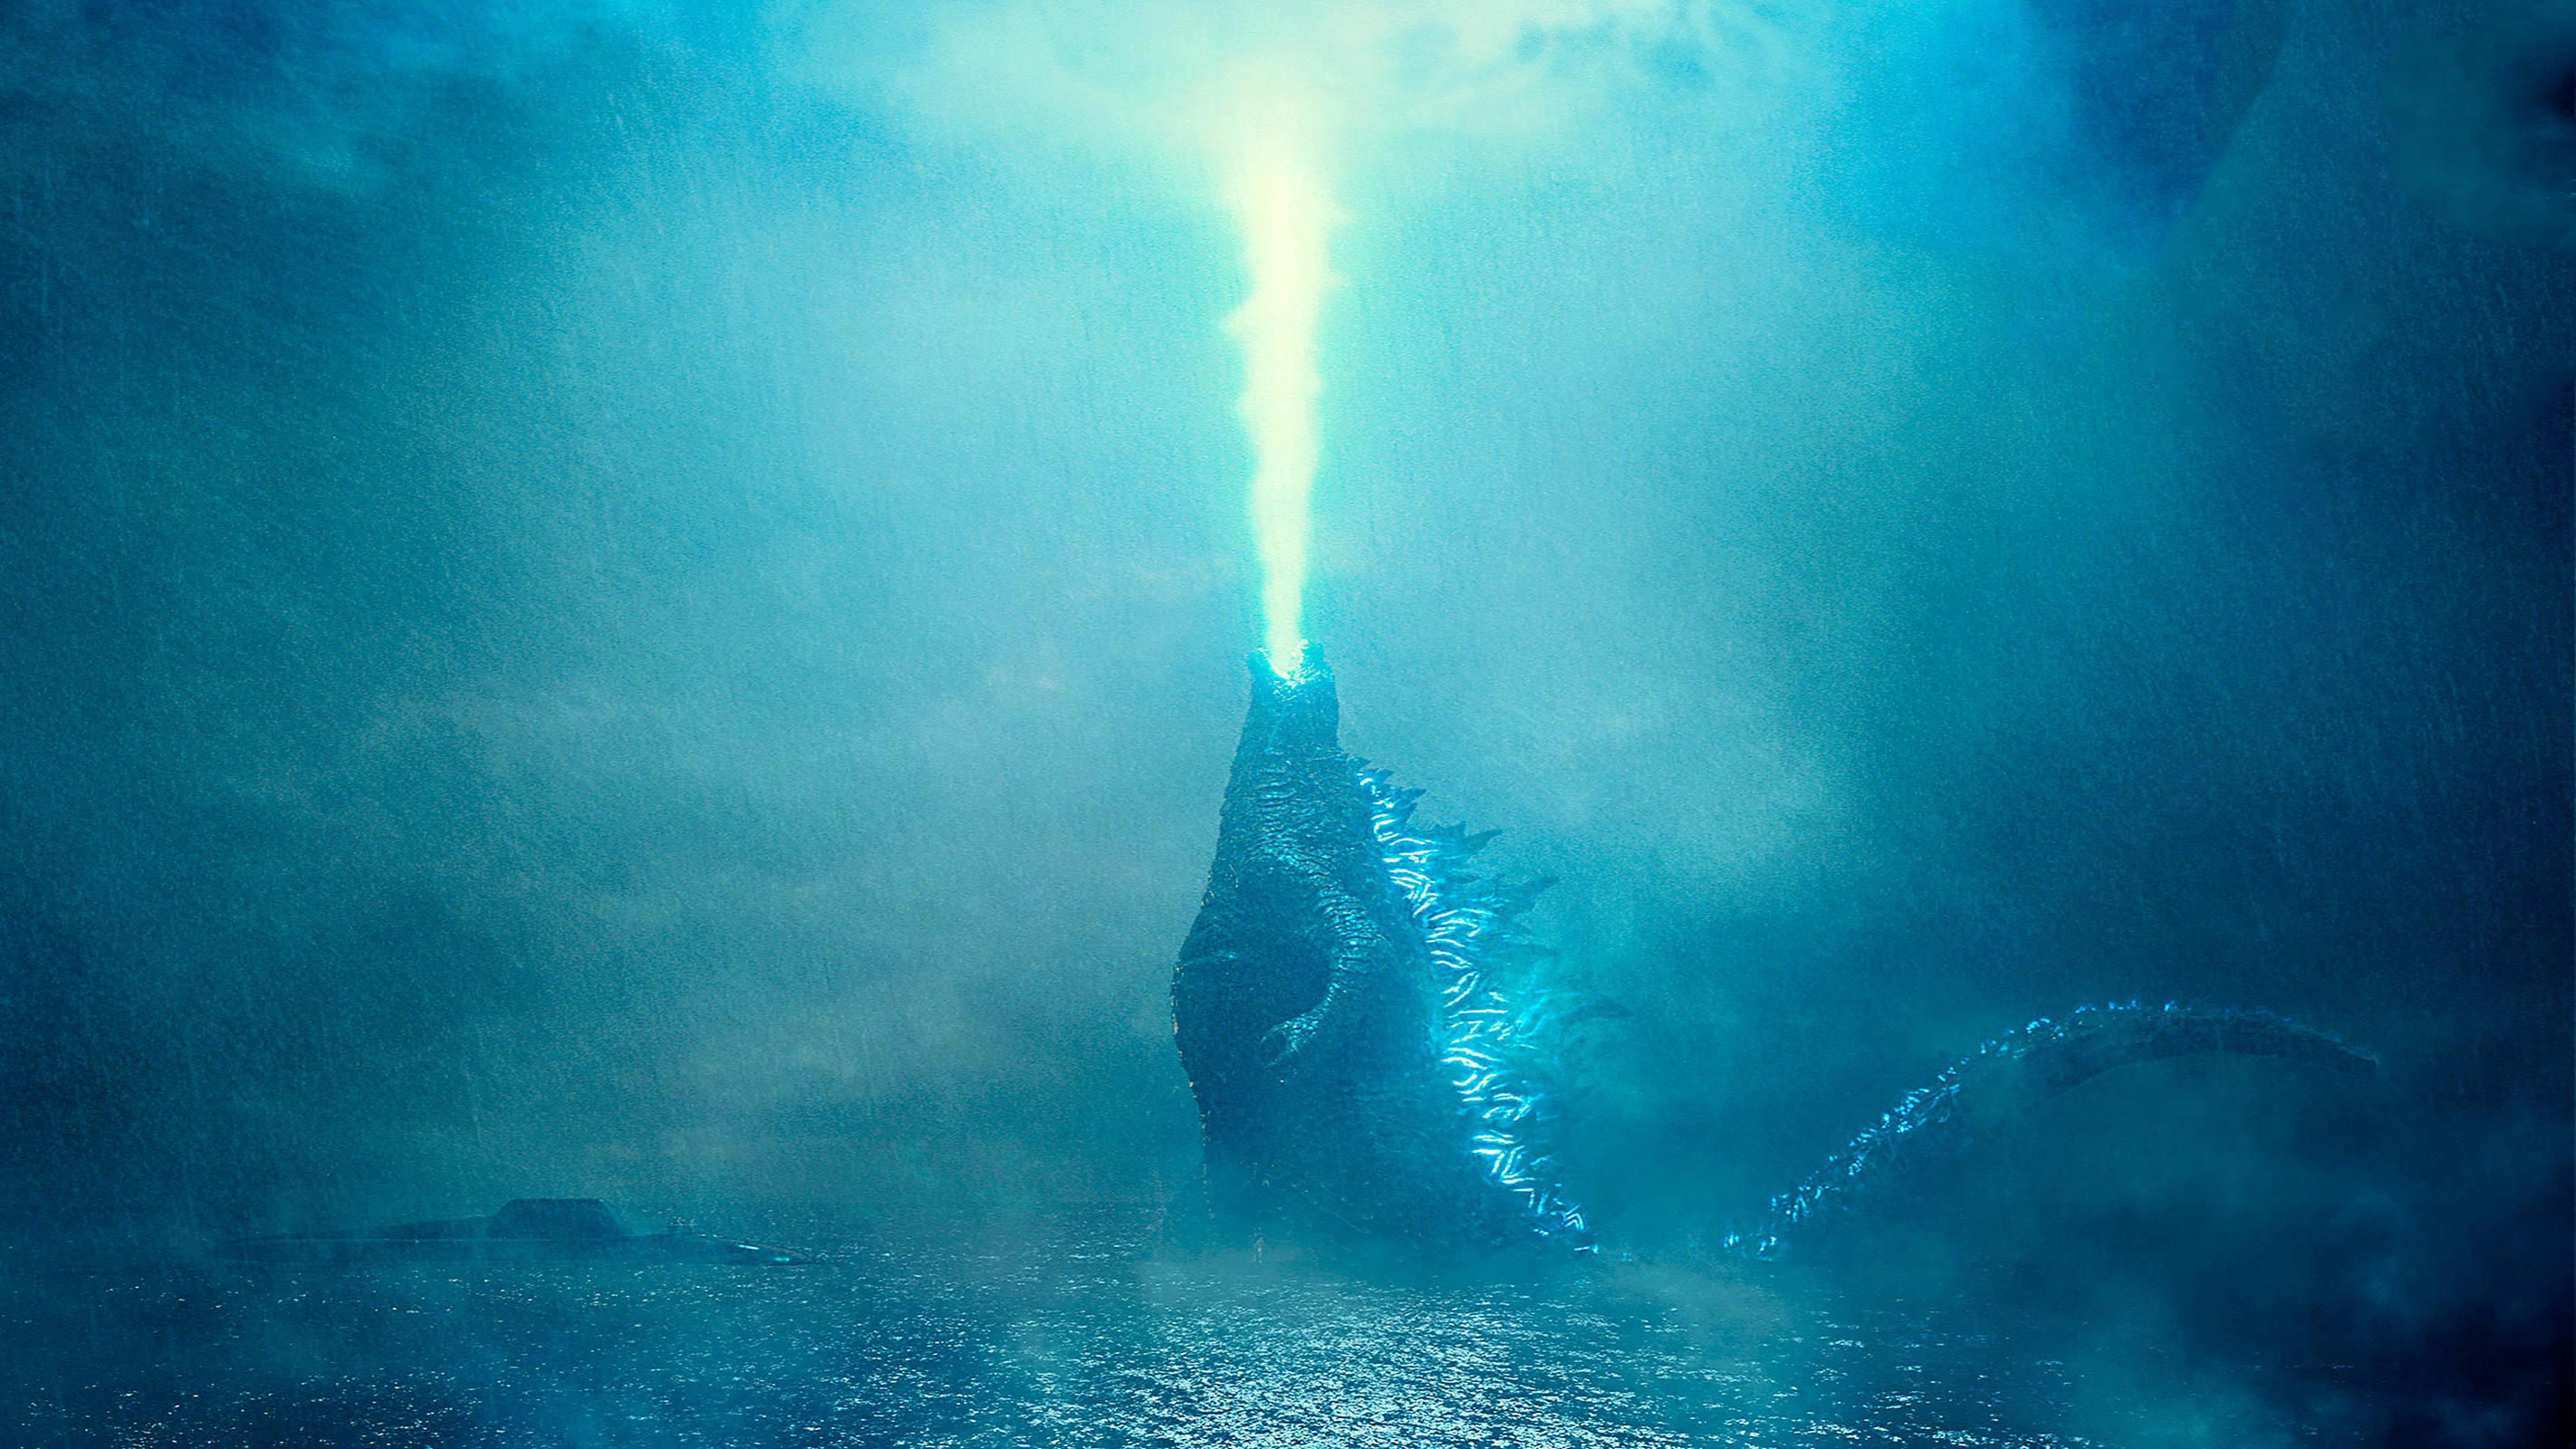 Godzilla King Of The Monsters 2019 Hd Movies 4k Wallpapers Images Backgrounds Photos And Pictures